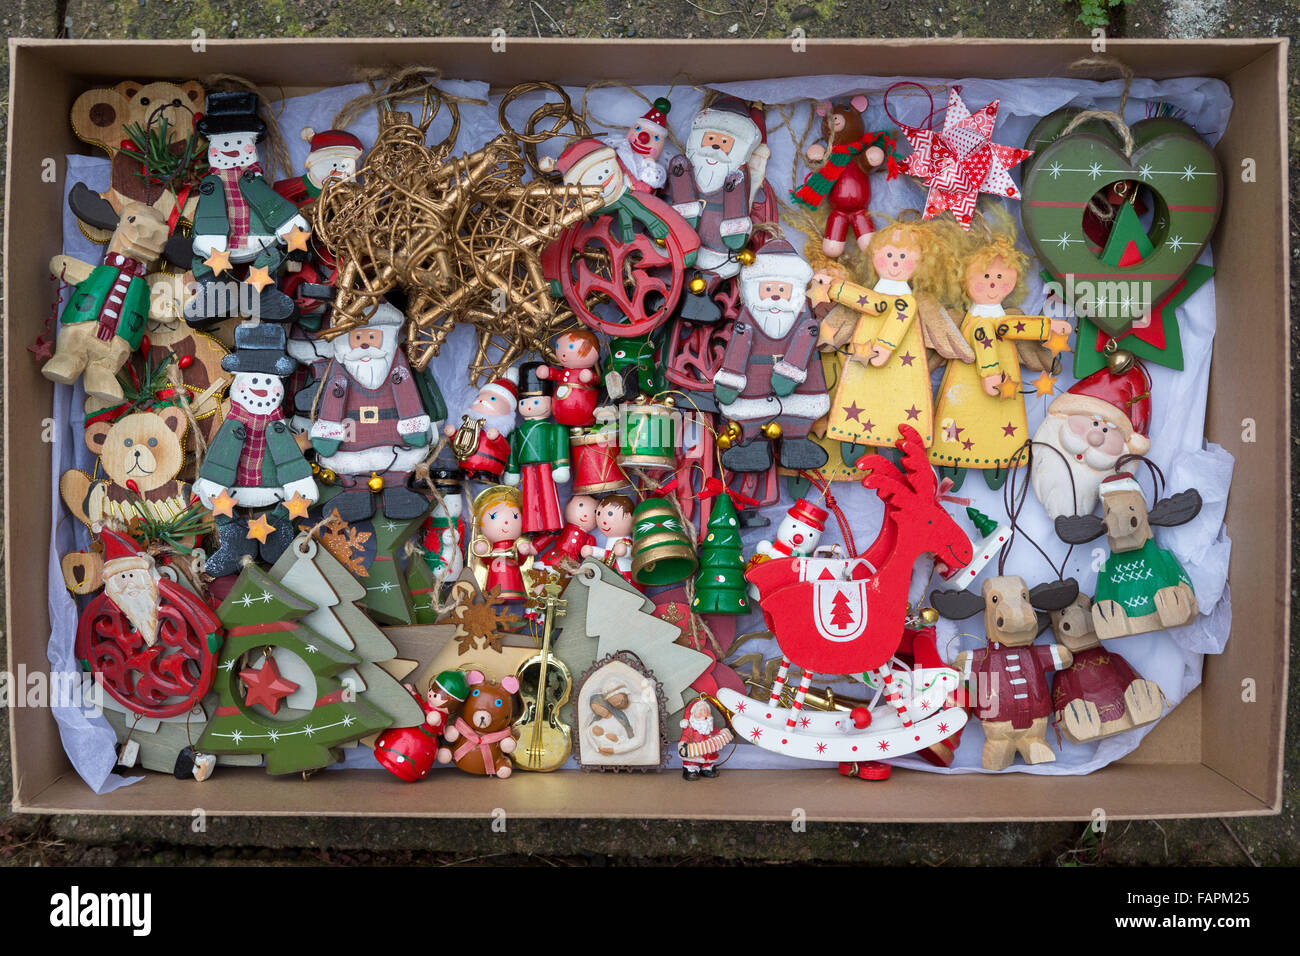 traditional wooden christmas tree decorations taken down and put back in box stock image